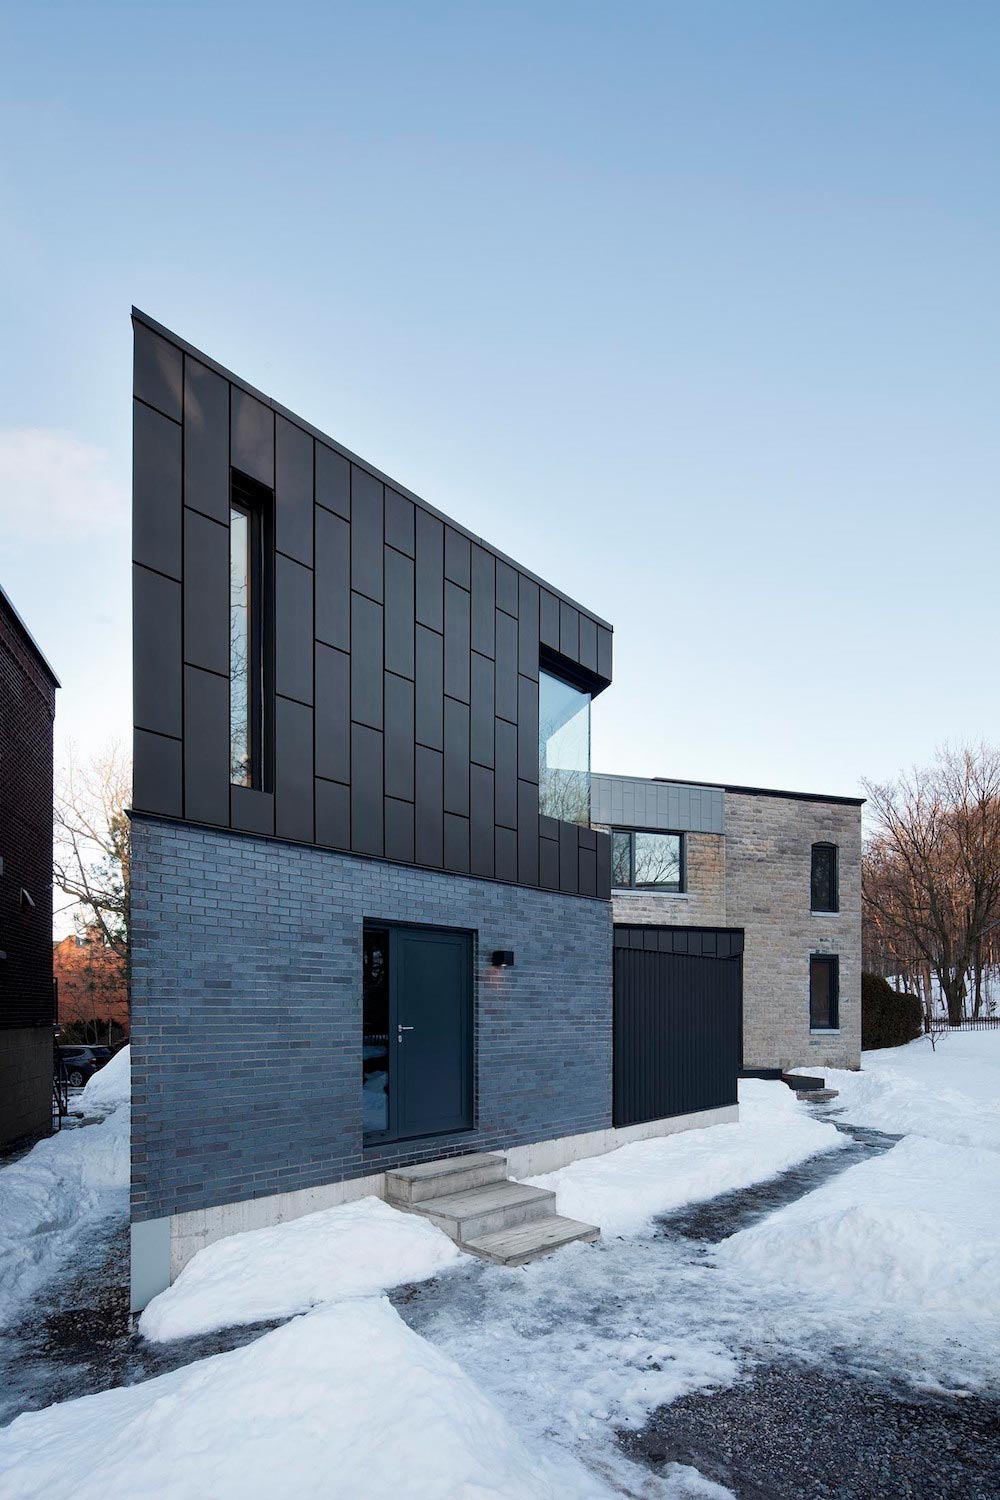 NatureHumaine redesigned the McCulloch Residence, a 1860s old home near Mount Royal in Montreal